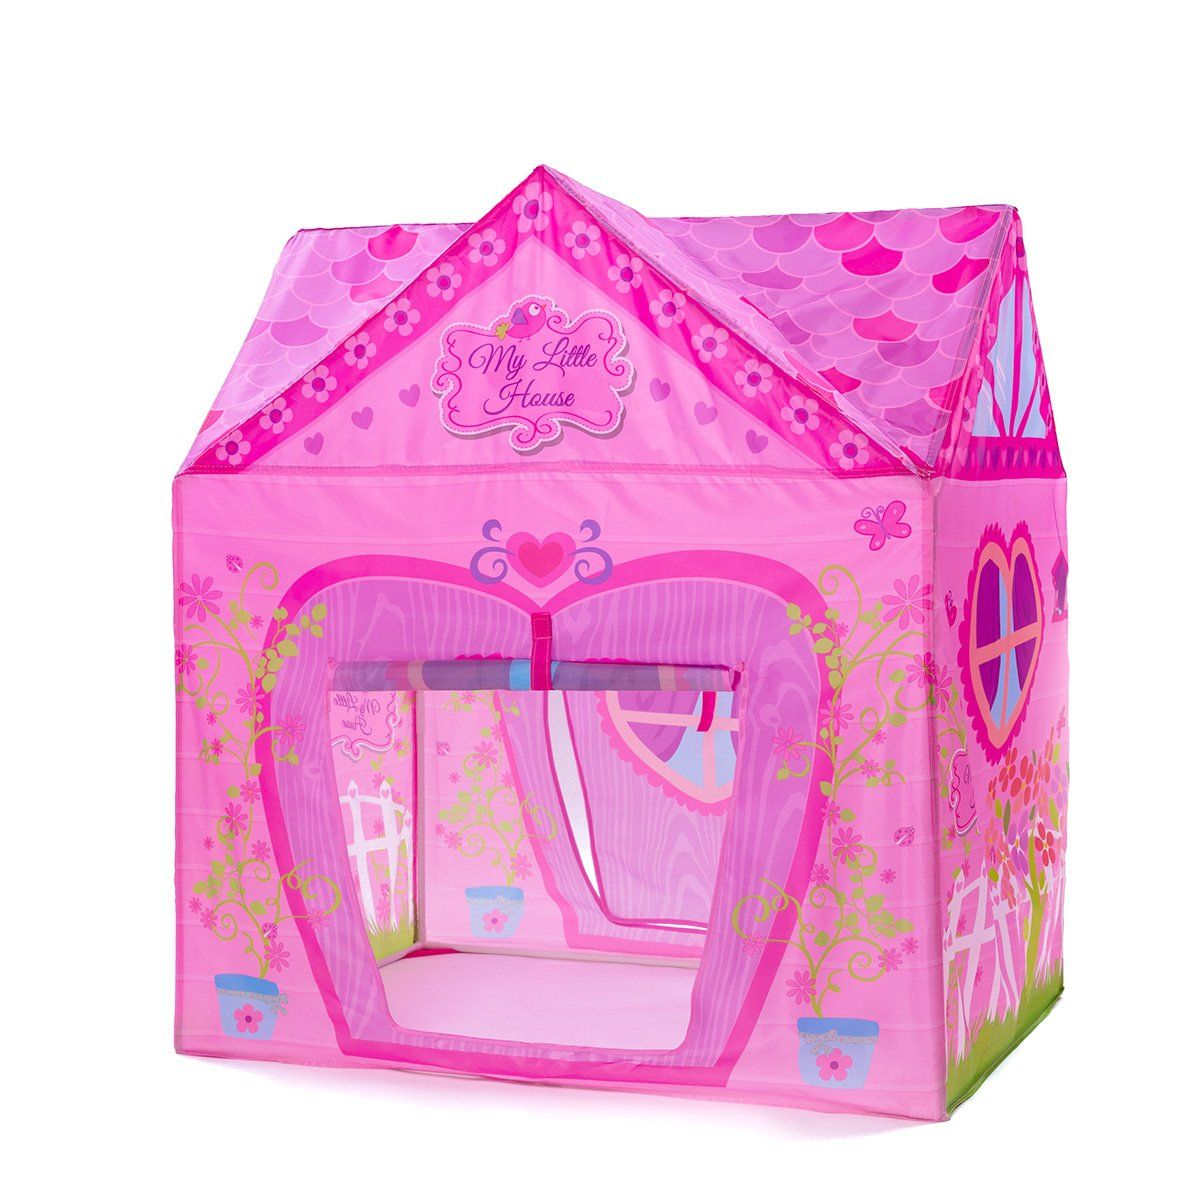 Kids Tent PLAY10 Flower Playhouse for Kids Foldable Play Tent for Children Indoor u0026 Outdoor Fun Including 10 pit balls. Lovely Flowers Design Pink Little ...  sc 1 st  Pinterest & Kids Tent PLAY10 Flower Playhouse for Kids Foldable Play Tent for ...